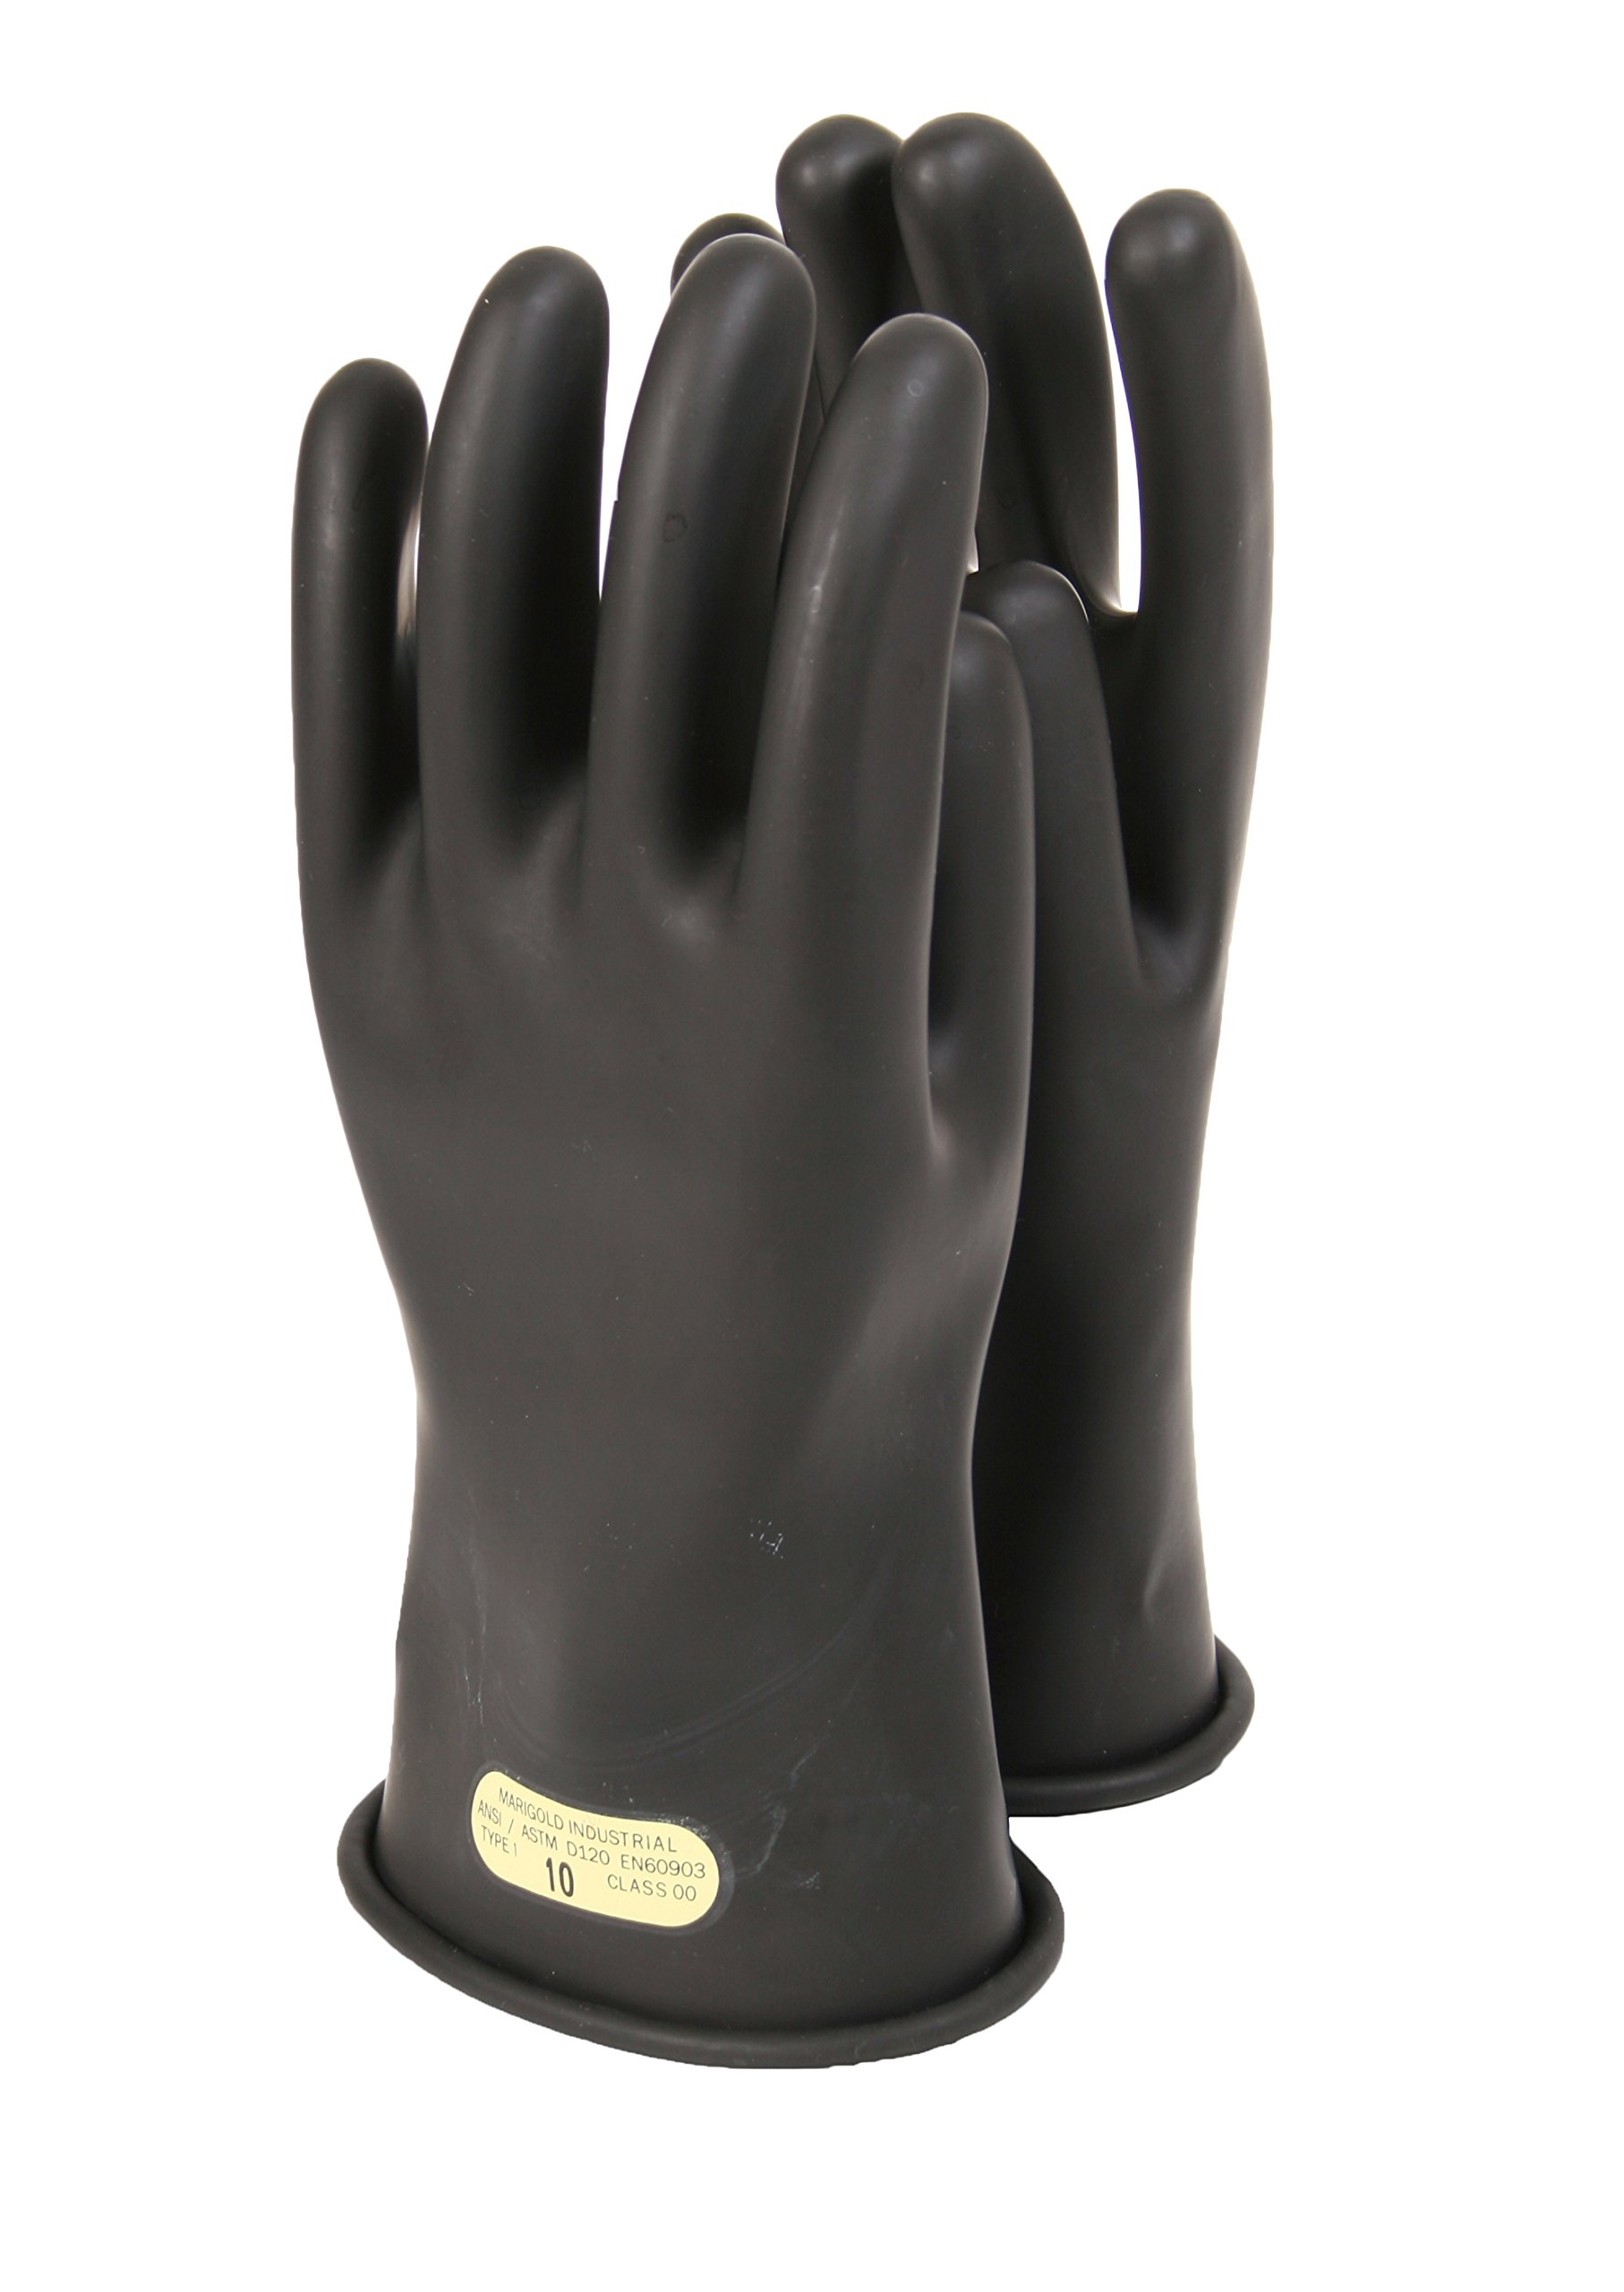 National Safety Apparel Class 0 Black Rubber Voltage Insulating Gloves, Max. Use Voltage 1000V AC/1500V DC (DWH1109)